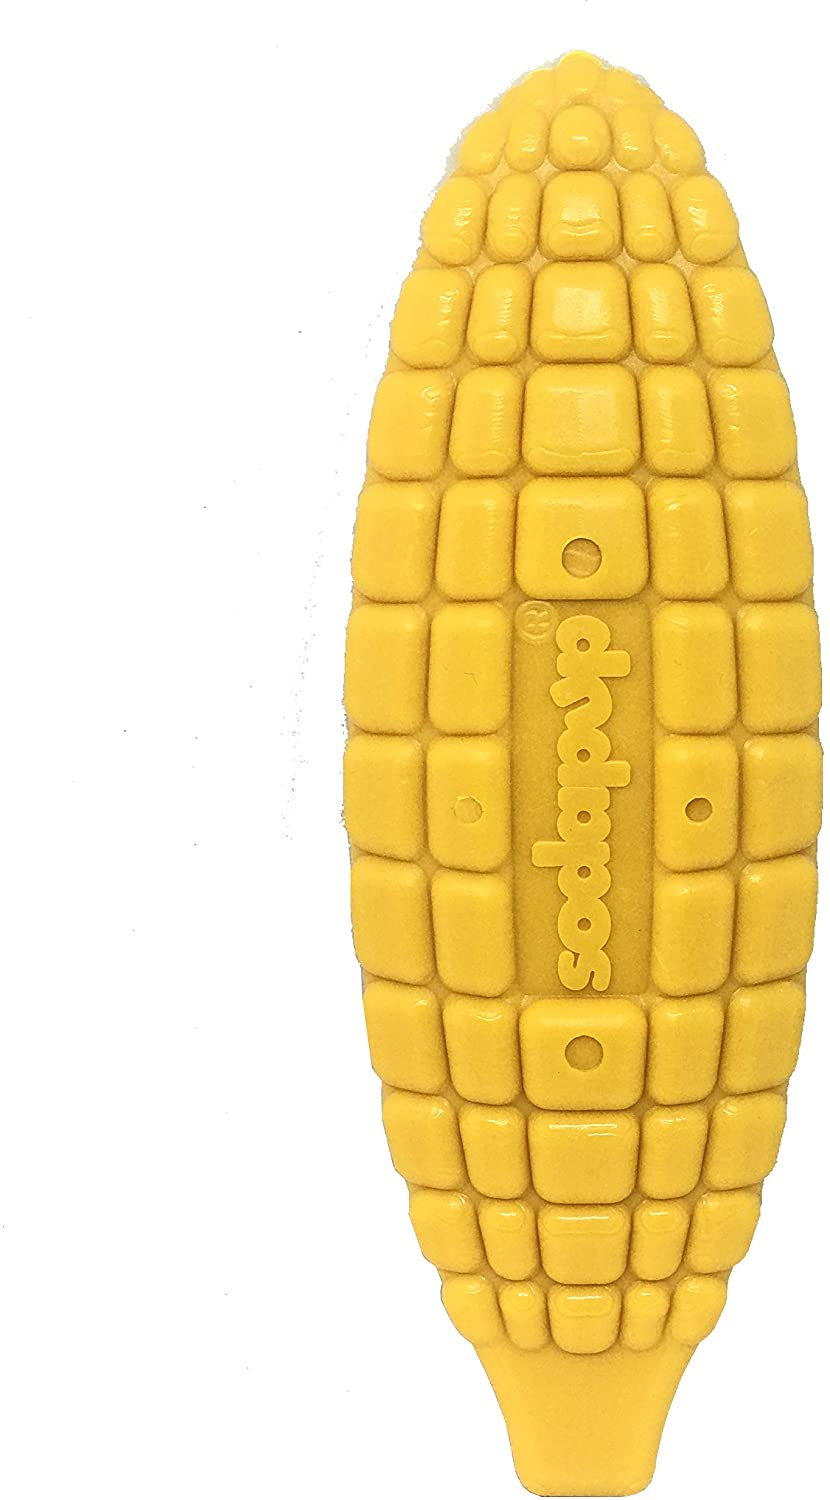 SodaPup Corn On The Cob Dog Toy - Tough Dog Toys - Durable Dog Toys - Dog Chews for Aggressive Chewers - Chew Toy - Enrichment Toy for Dogs